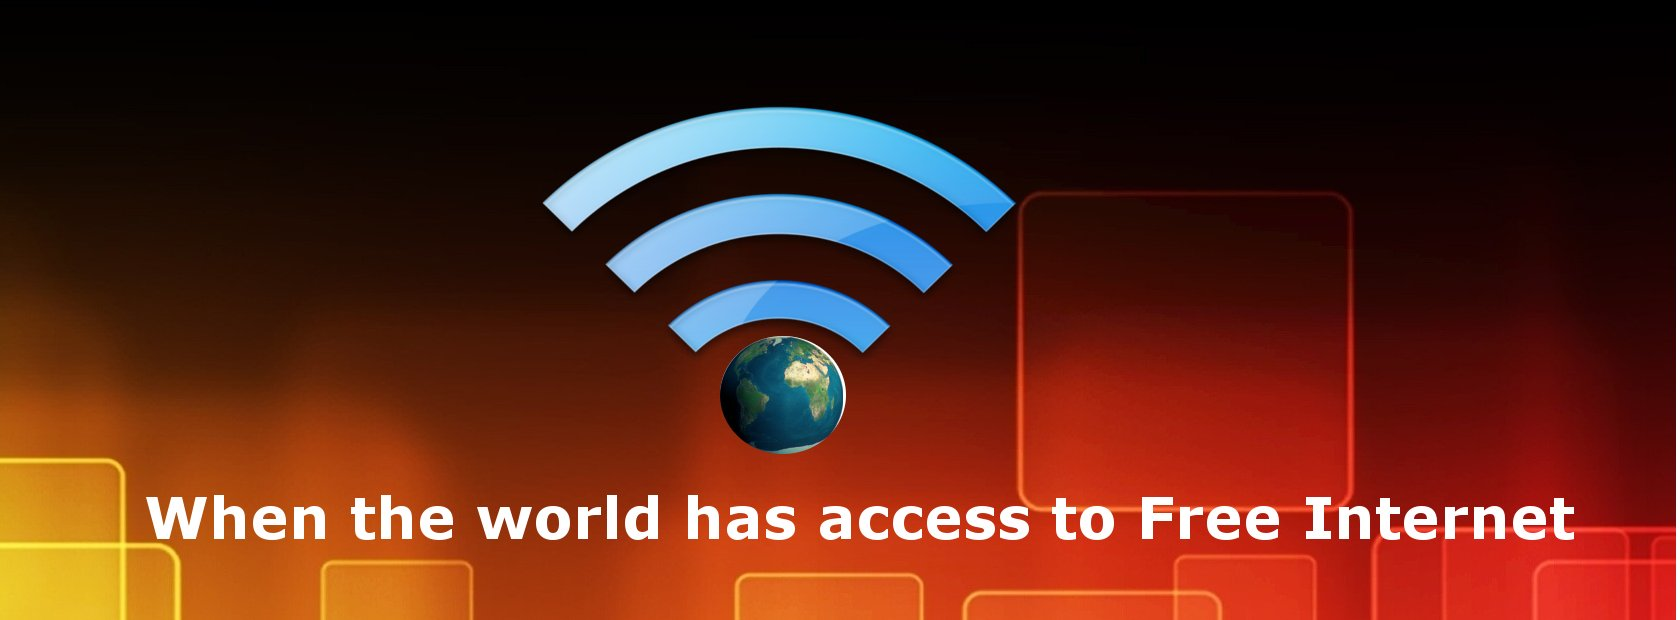 When the world has access to Free Internet